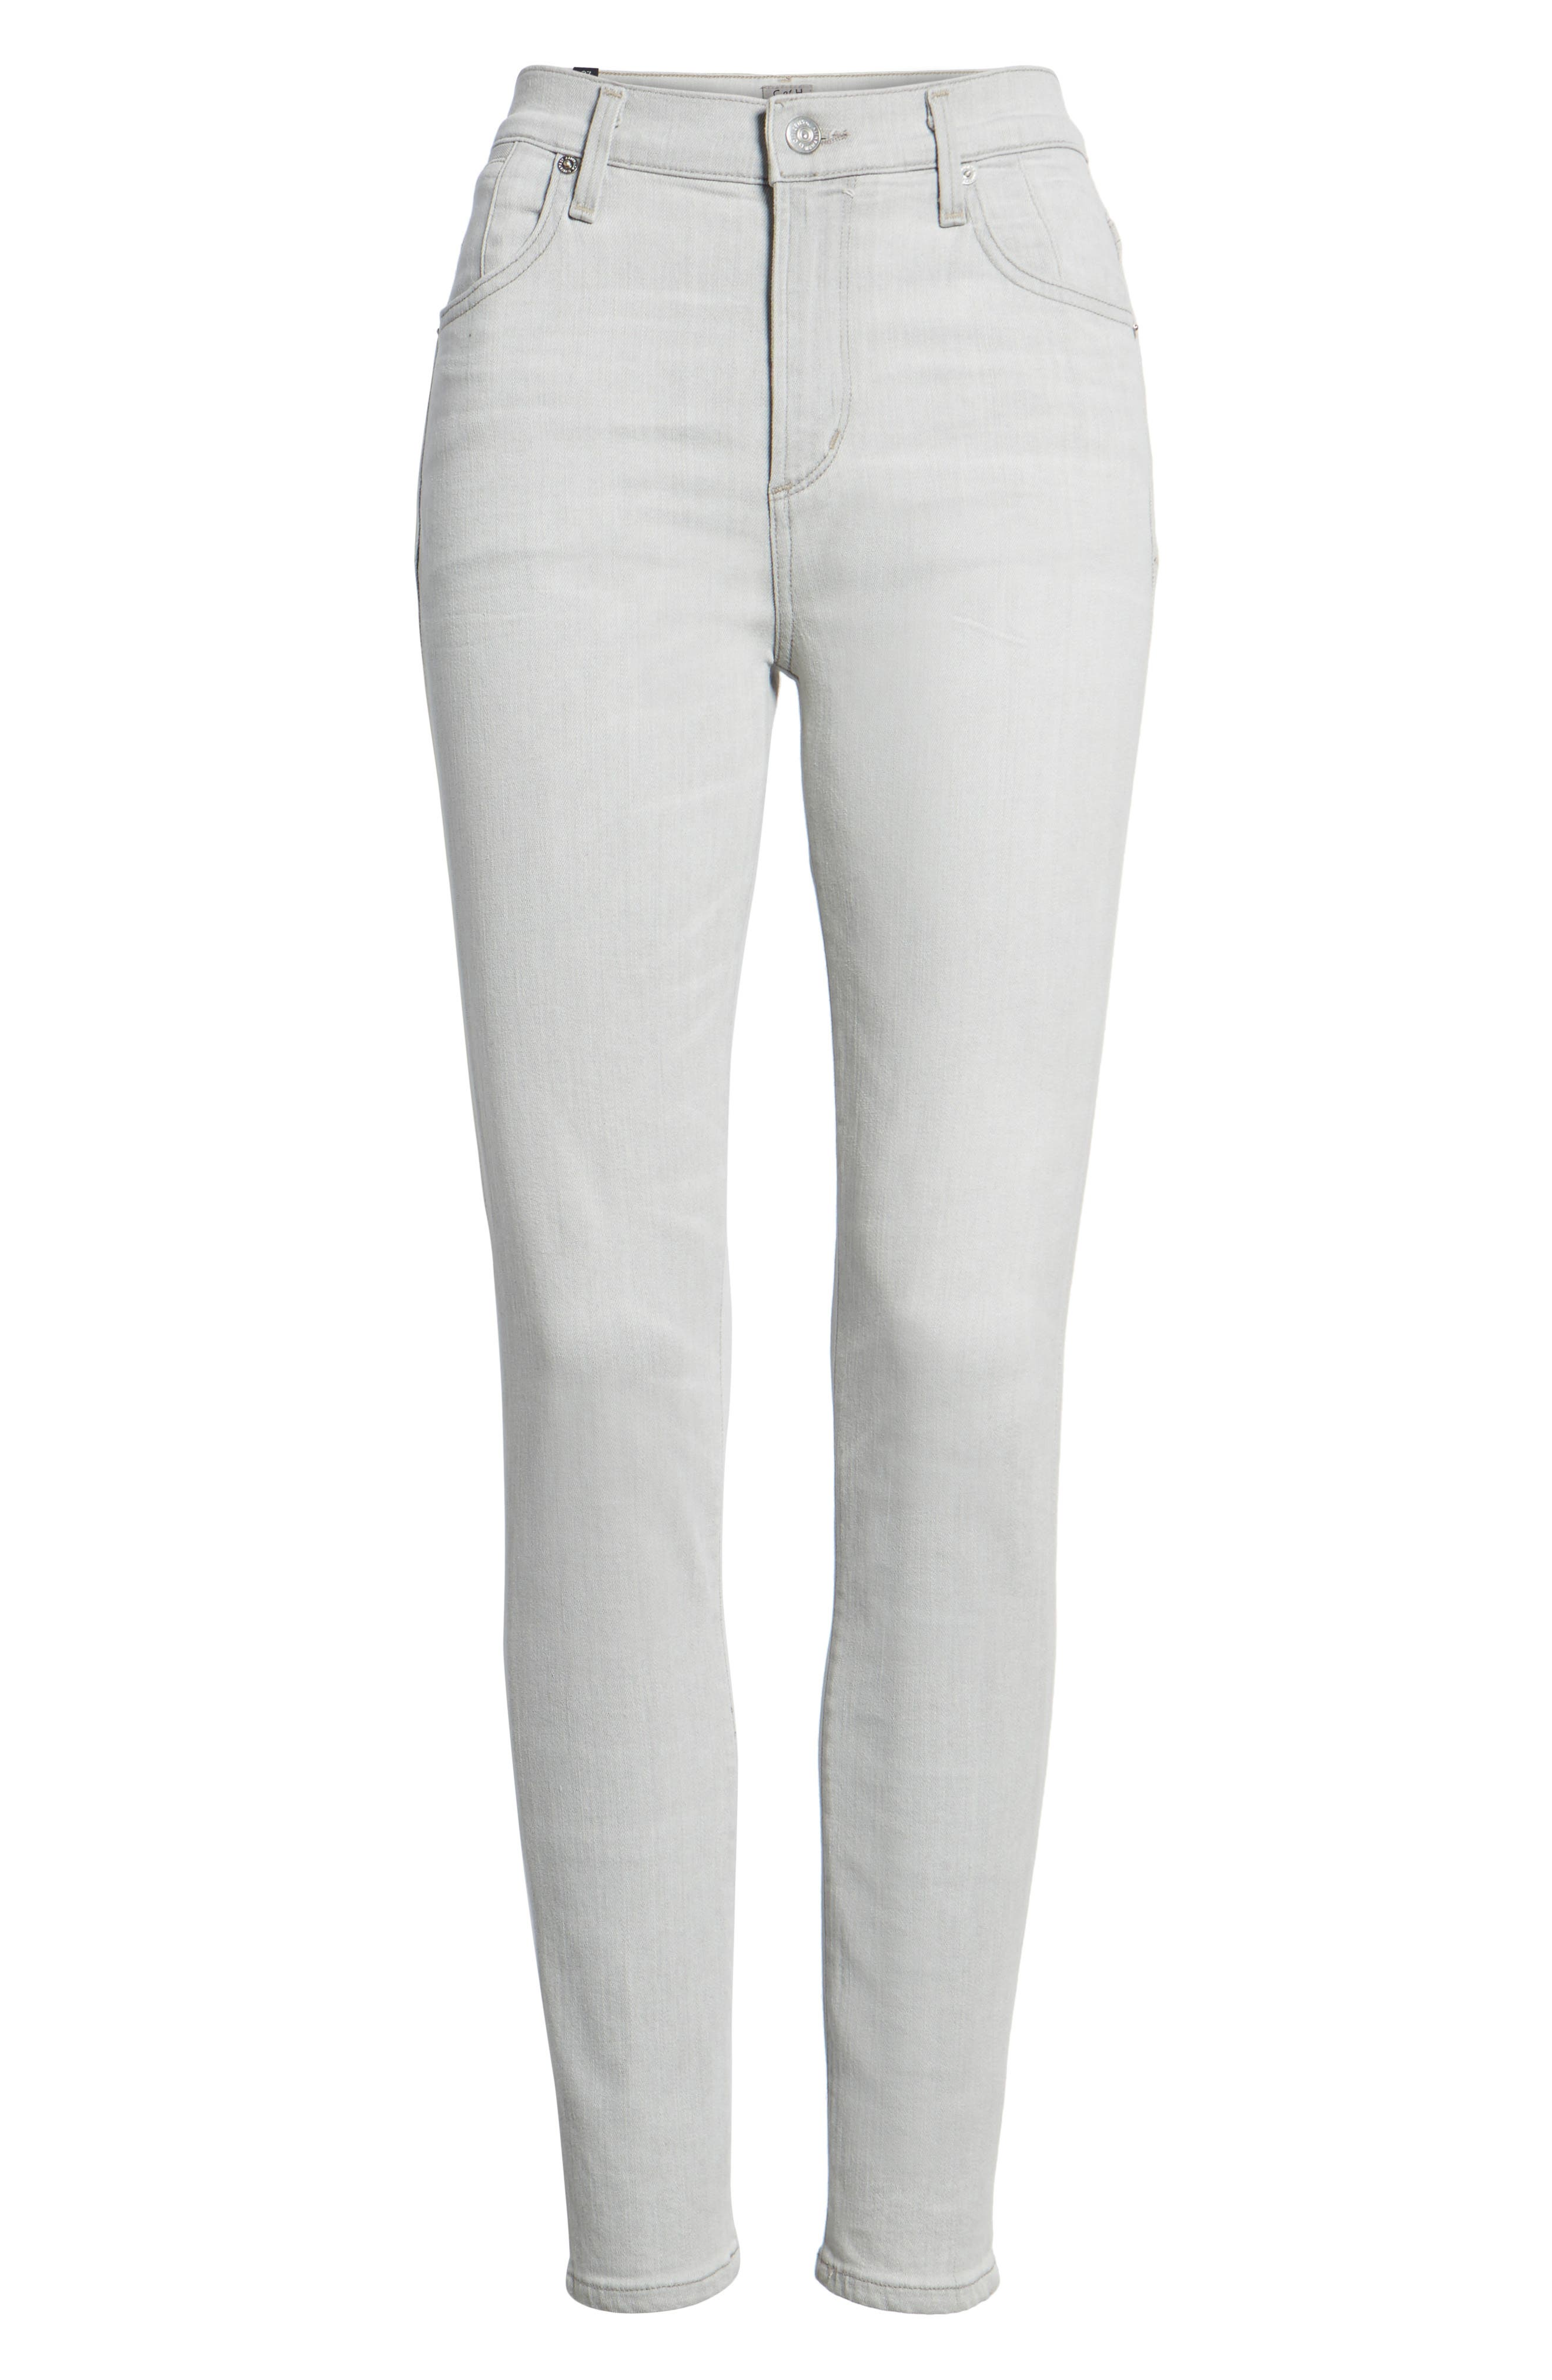 Carlie High Waist Ankle Skinny Jeans,                             Alternate thumbnail 7, color,                             055